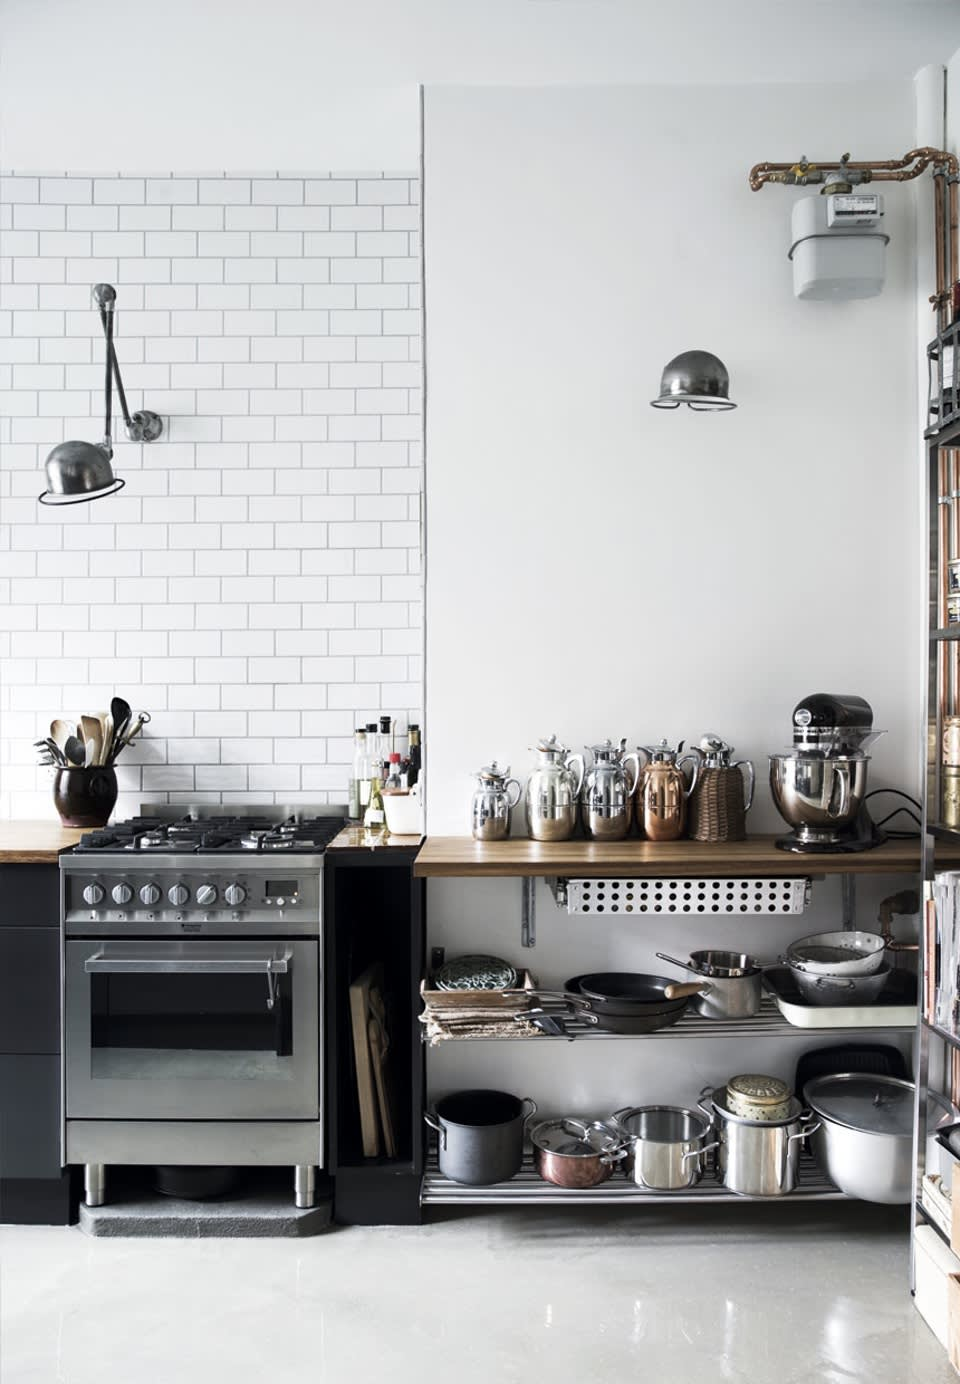 Kitchens Without Upper Cabinets: Should You Go Without? | Apartment on kitchens without top cabinets, kitchens with shelving but no cabinets, kitchens with wood floors blue walls, kitchens with no top cabinets, kitchens with windows over base cabinets, kitchen tile backsplash with white cabinets, kitchens with low ceilings, kitchens with stone arch over stove, kitchens with no microwave, kitchens without upper cabinets ideas, kitchens with shelves instead of cupboards, small kitchen with no cabinets, adding upper cabinet to kitchen cabinets, kitchens with no sink, kitchens with no stove, kitchens with no wall cabinets, kitchens with no overhead cabinets, light upper dark lower kitchen cabinets, kitchens with no countertops, kitchens with upper shelves,